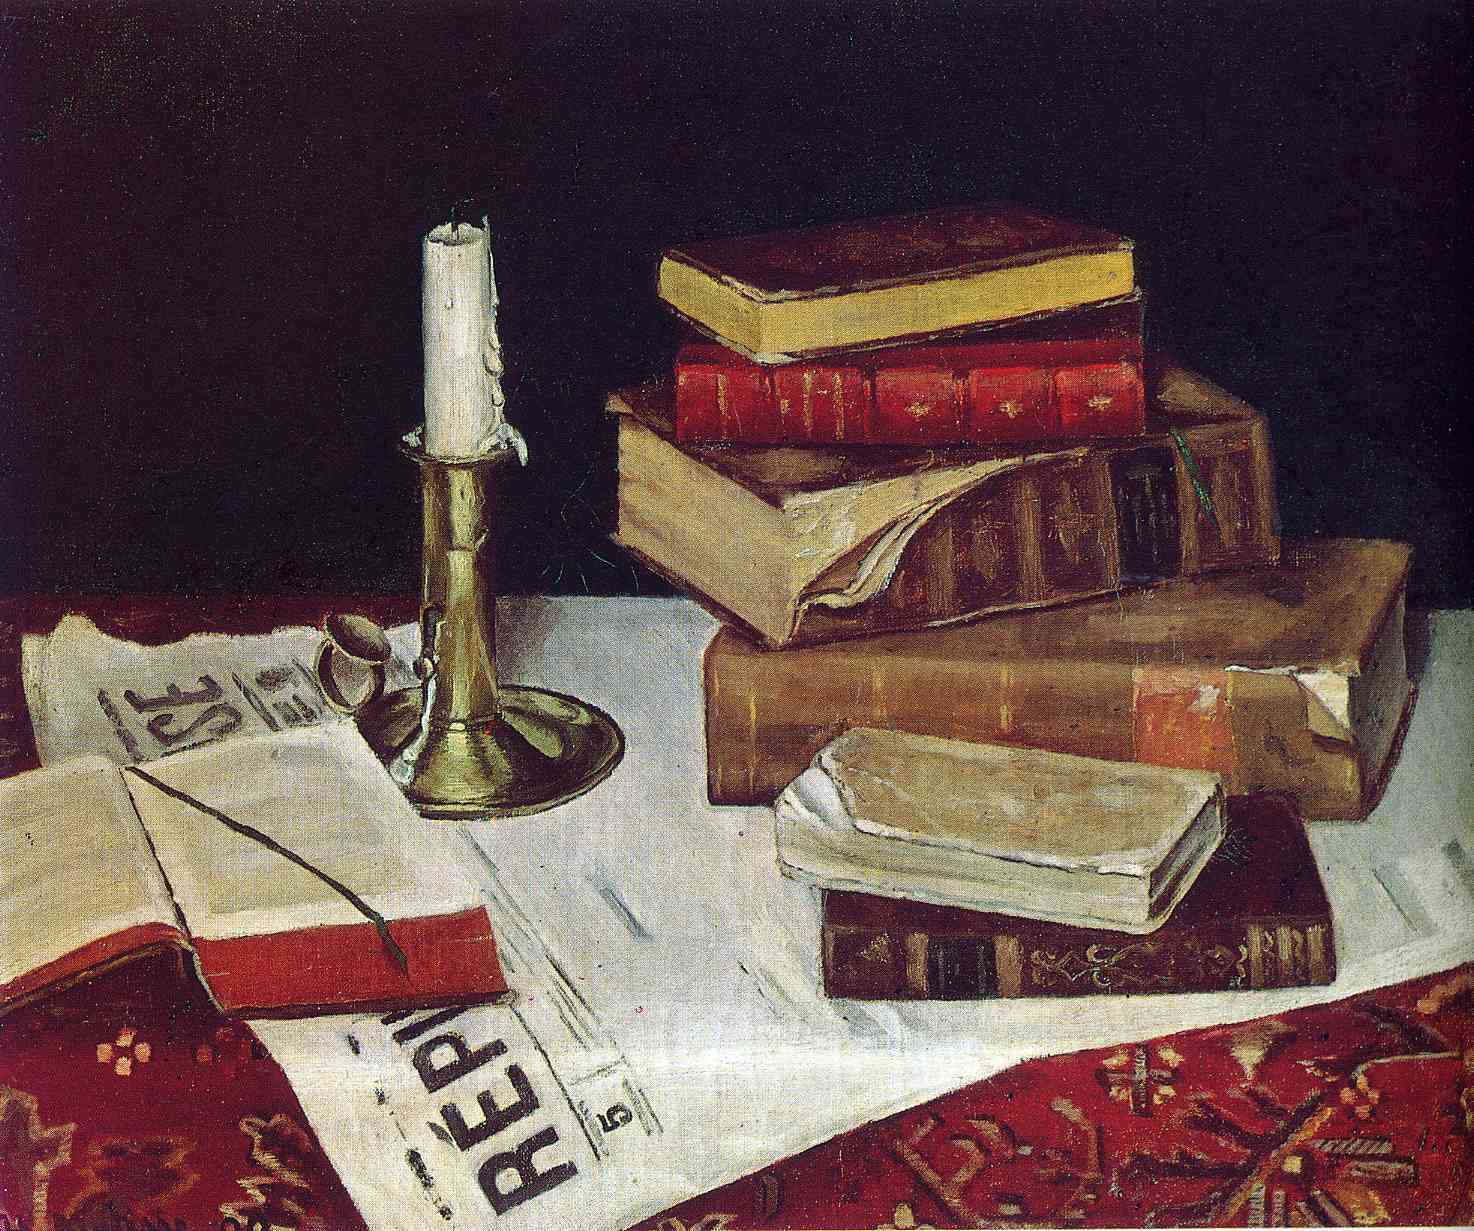 Henri Matisse - Still Life with Books and Candle 1890